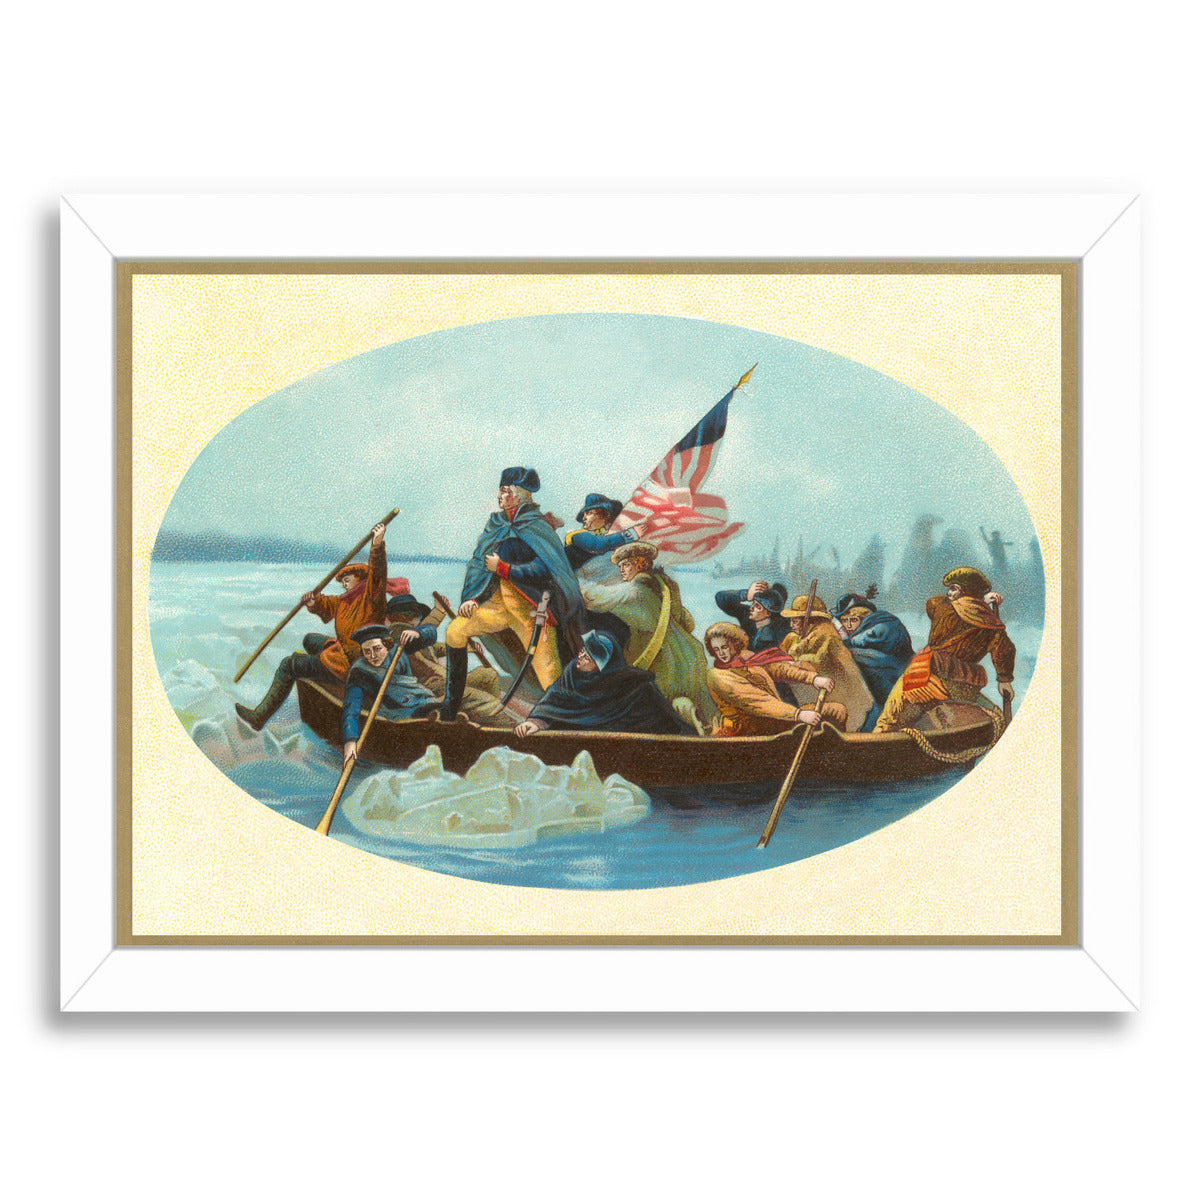 Washington Crossing The Delaware by Found Image Press Framed Print - Wall Art - Americanflat